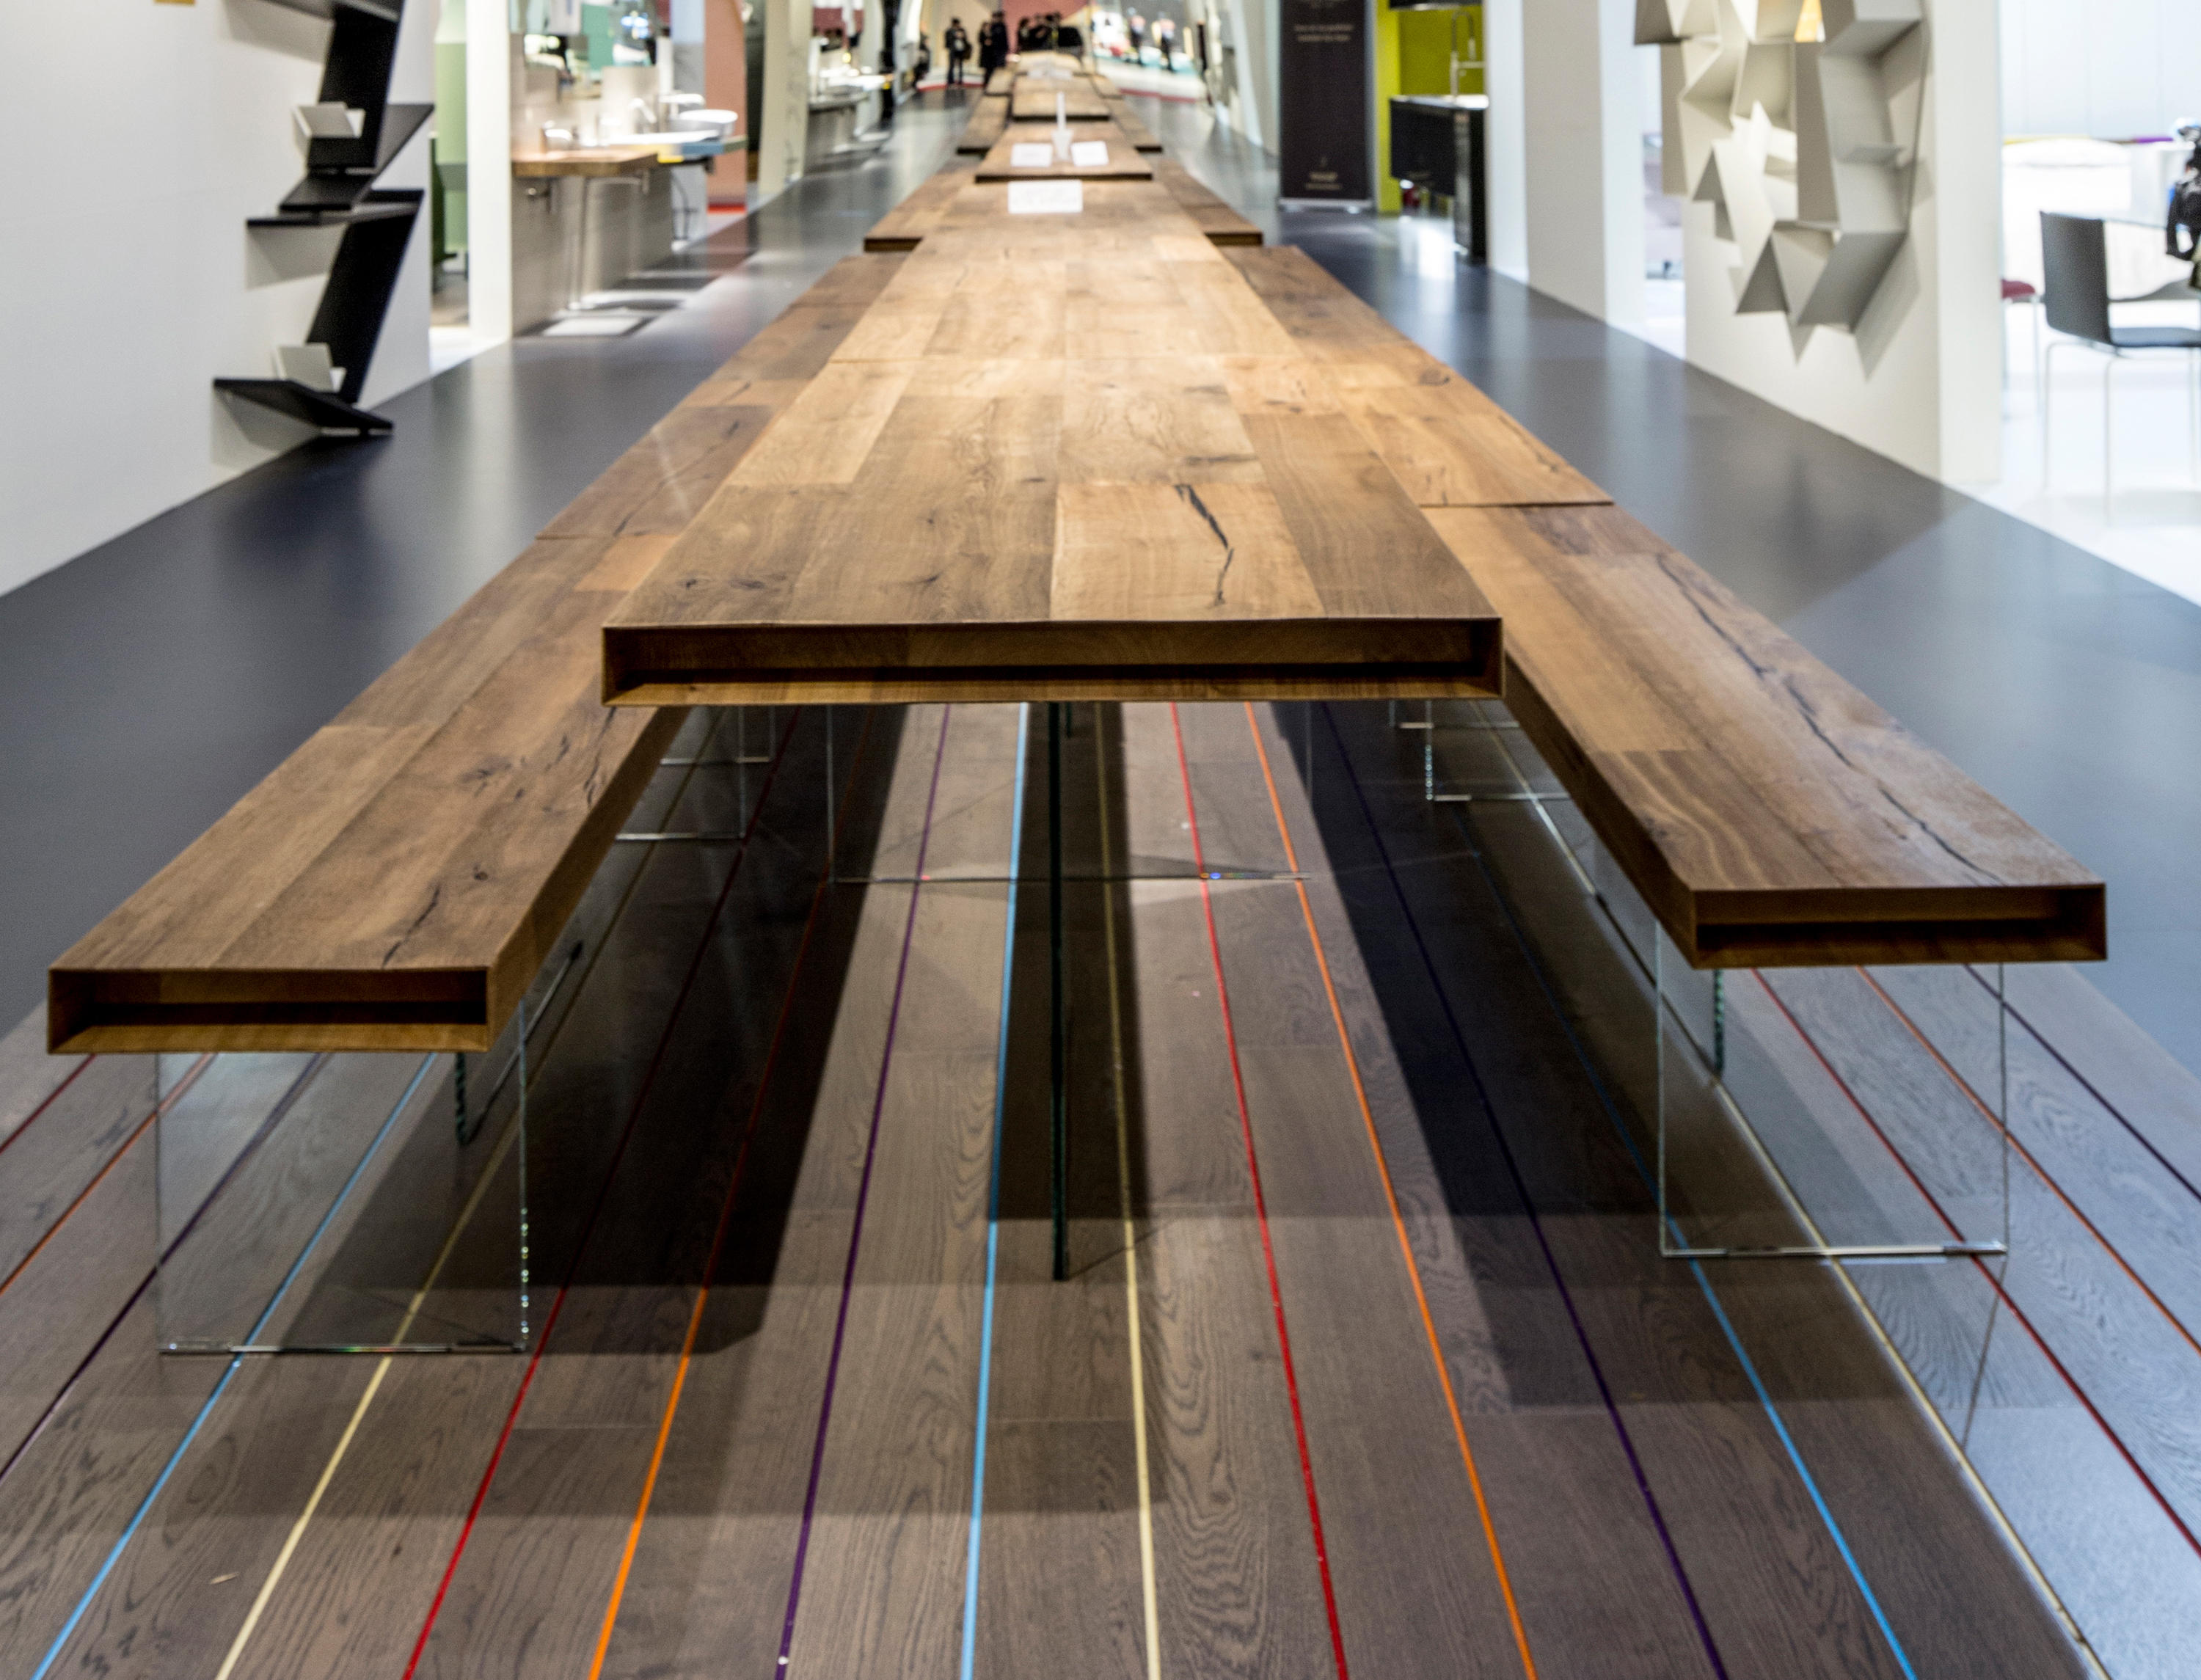 Air wildwood table dining tables from lago architonic for Lago wildwood